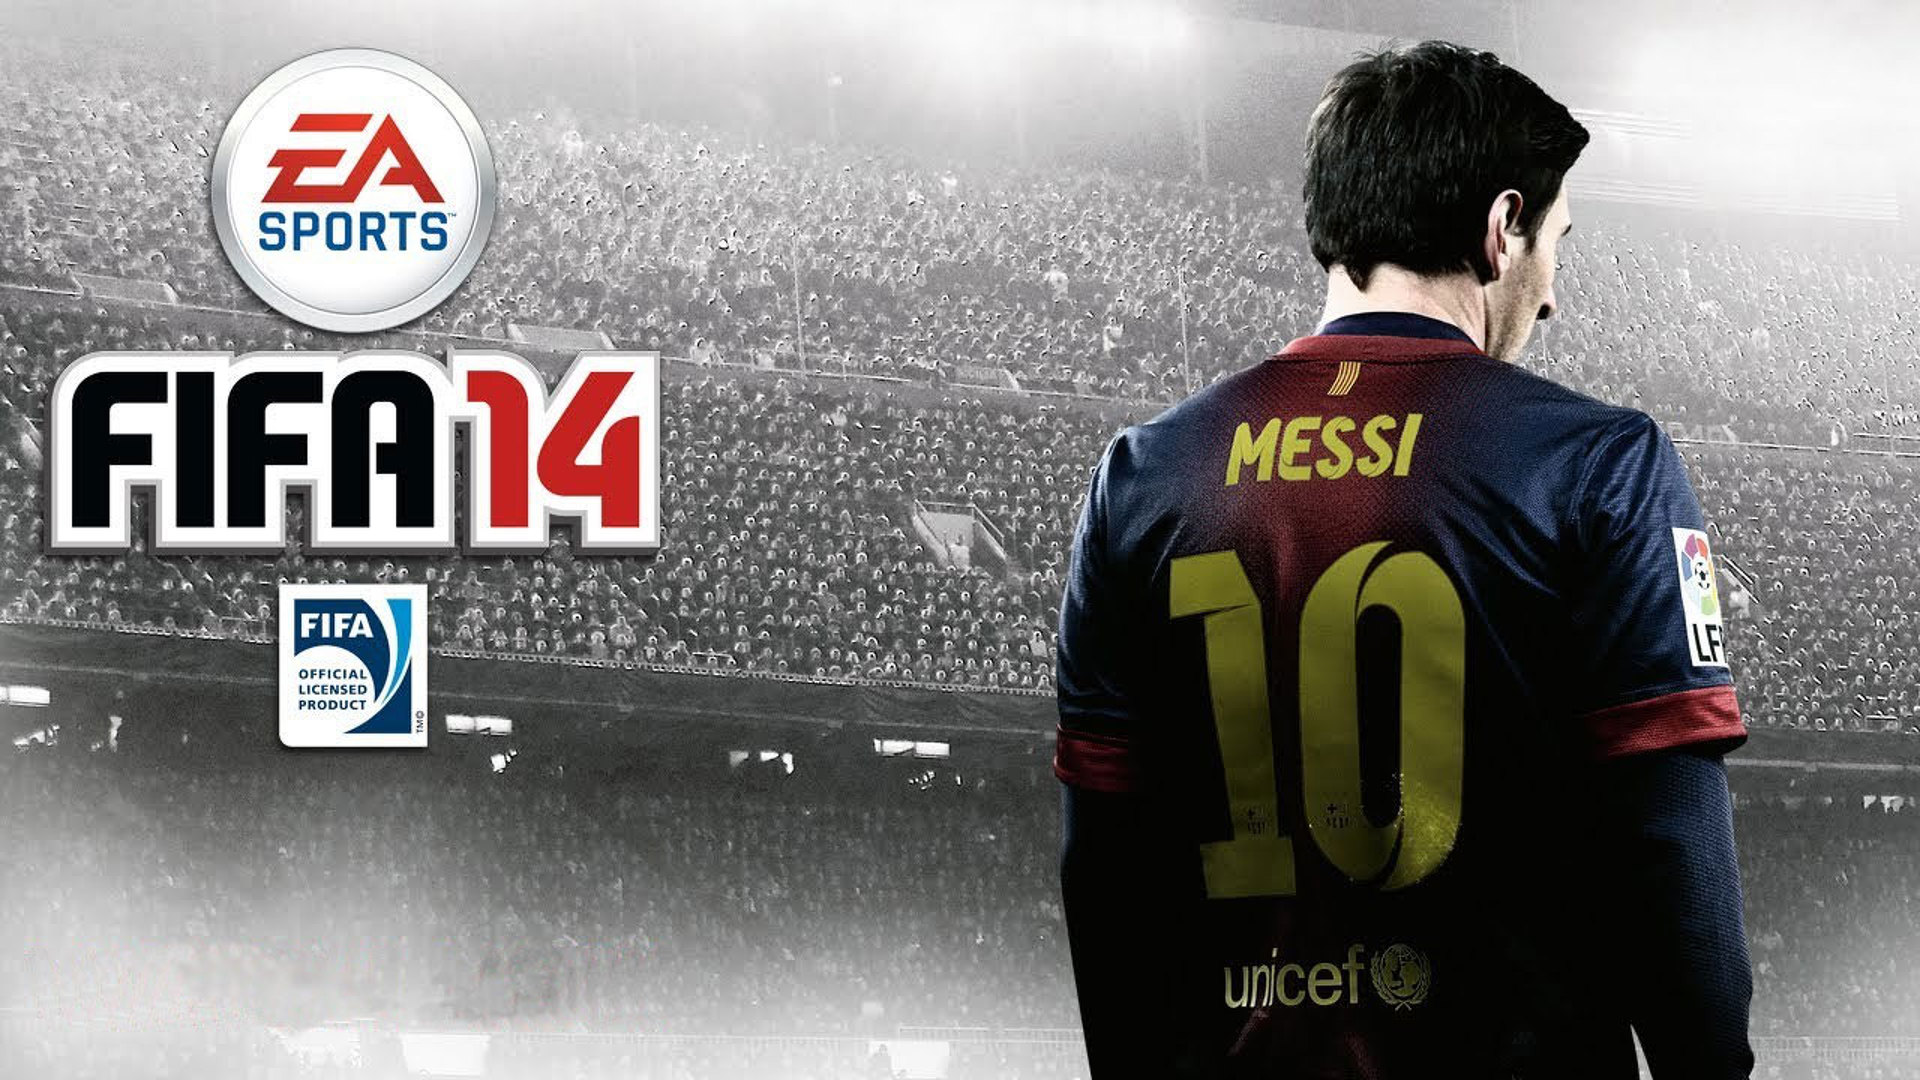 Fifa 14 full hd wallpaper and background image 1920x1080 id507704 video game fifa 14 wallpaper voltagebd Choice Image